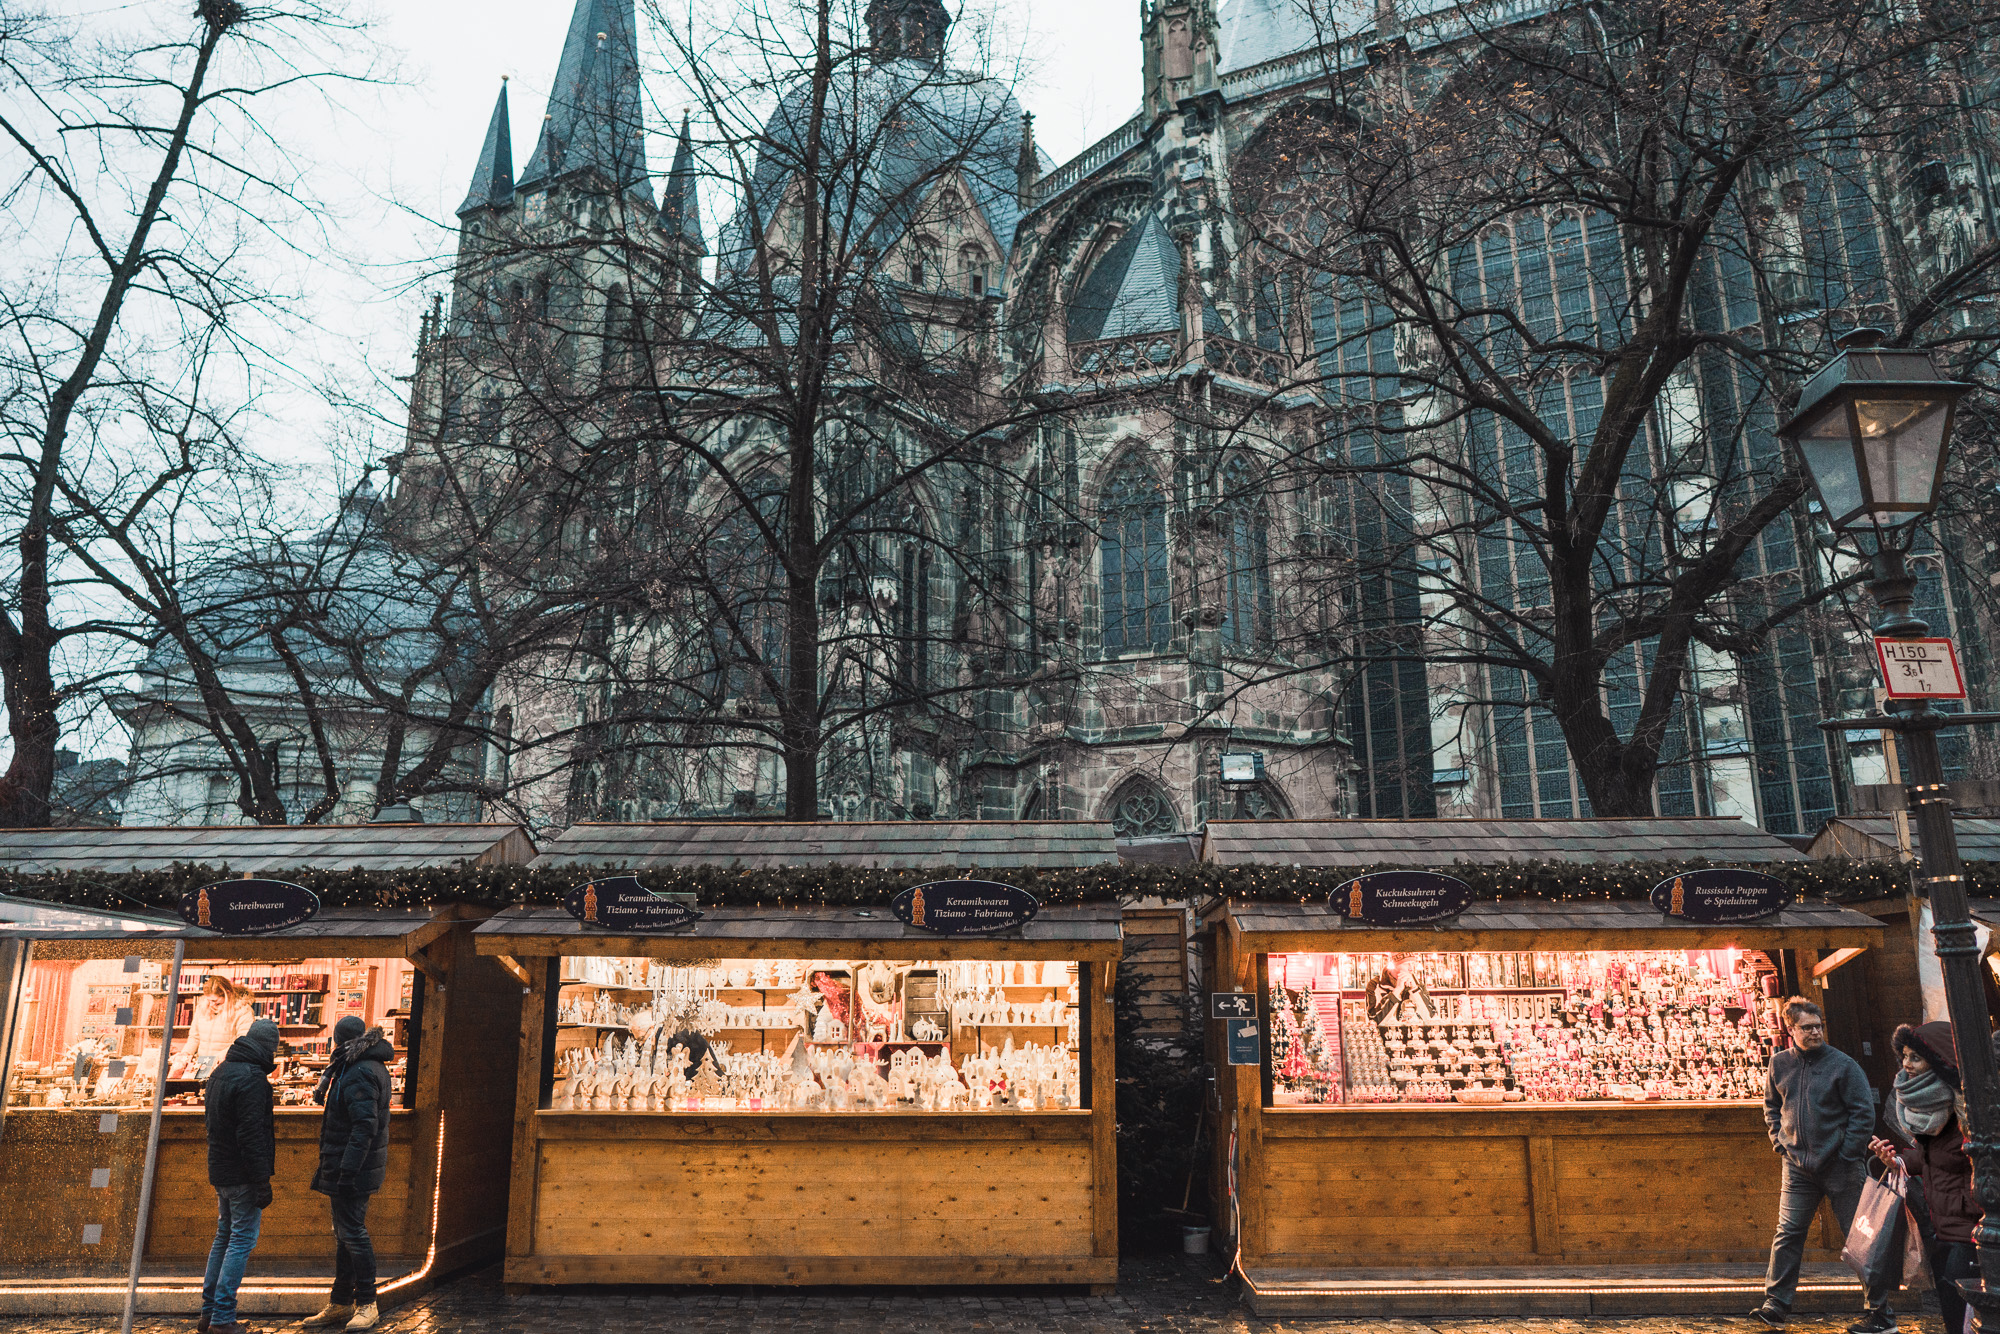 Christmas market stalls at the Aachen market in Germany